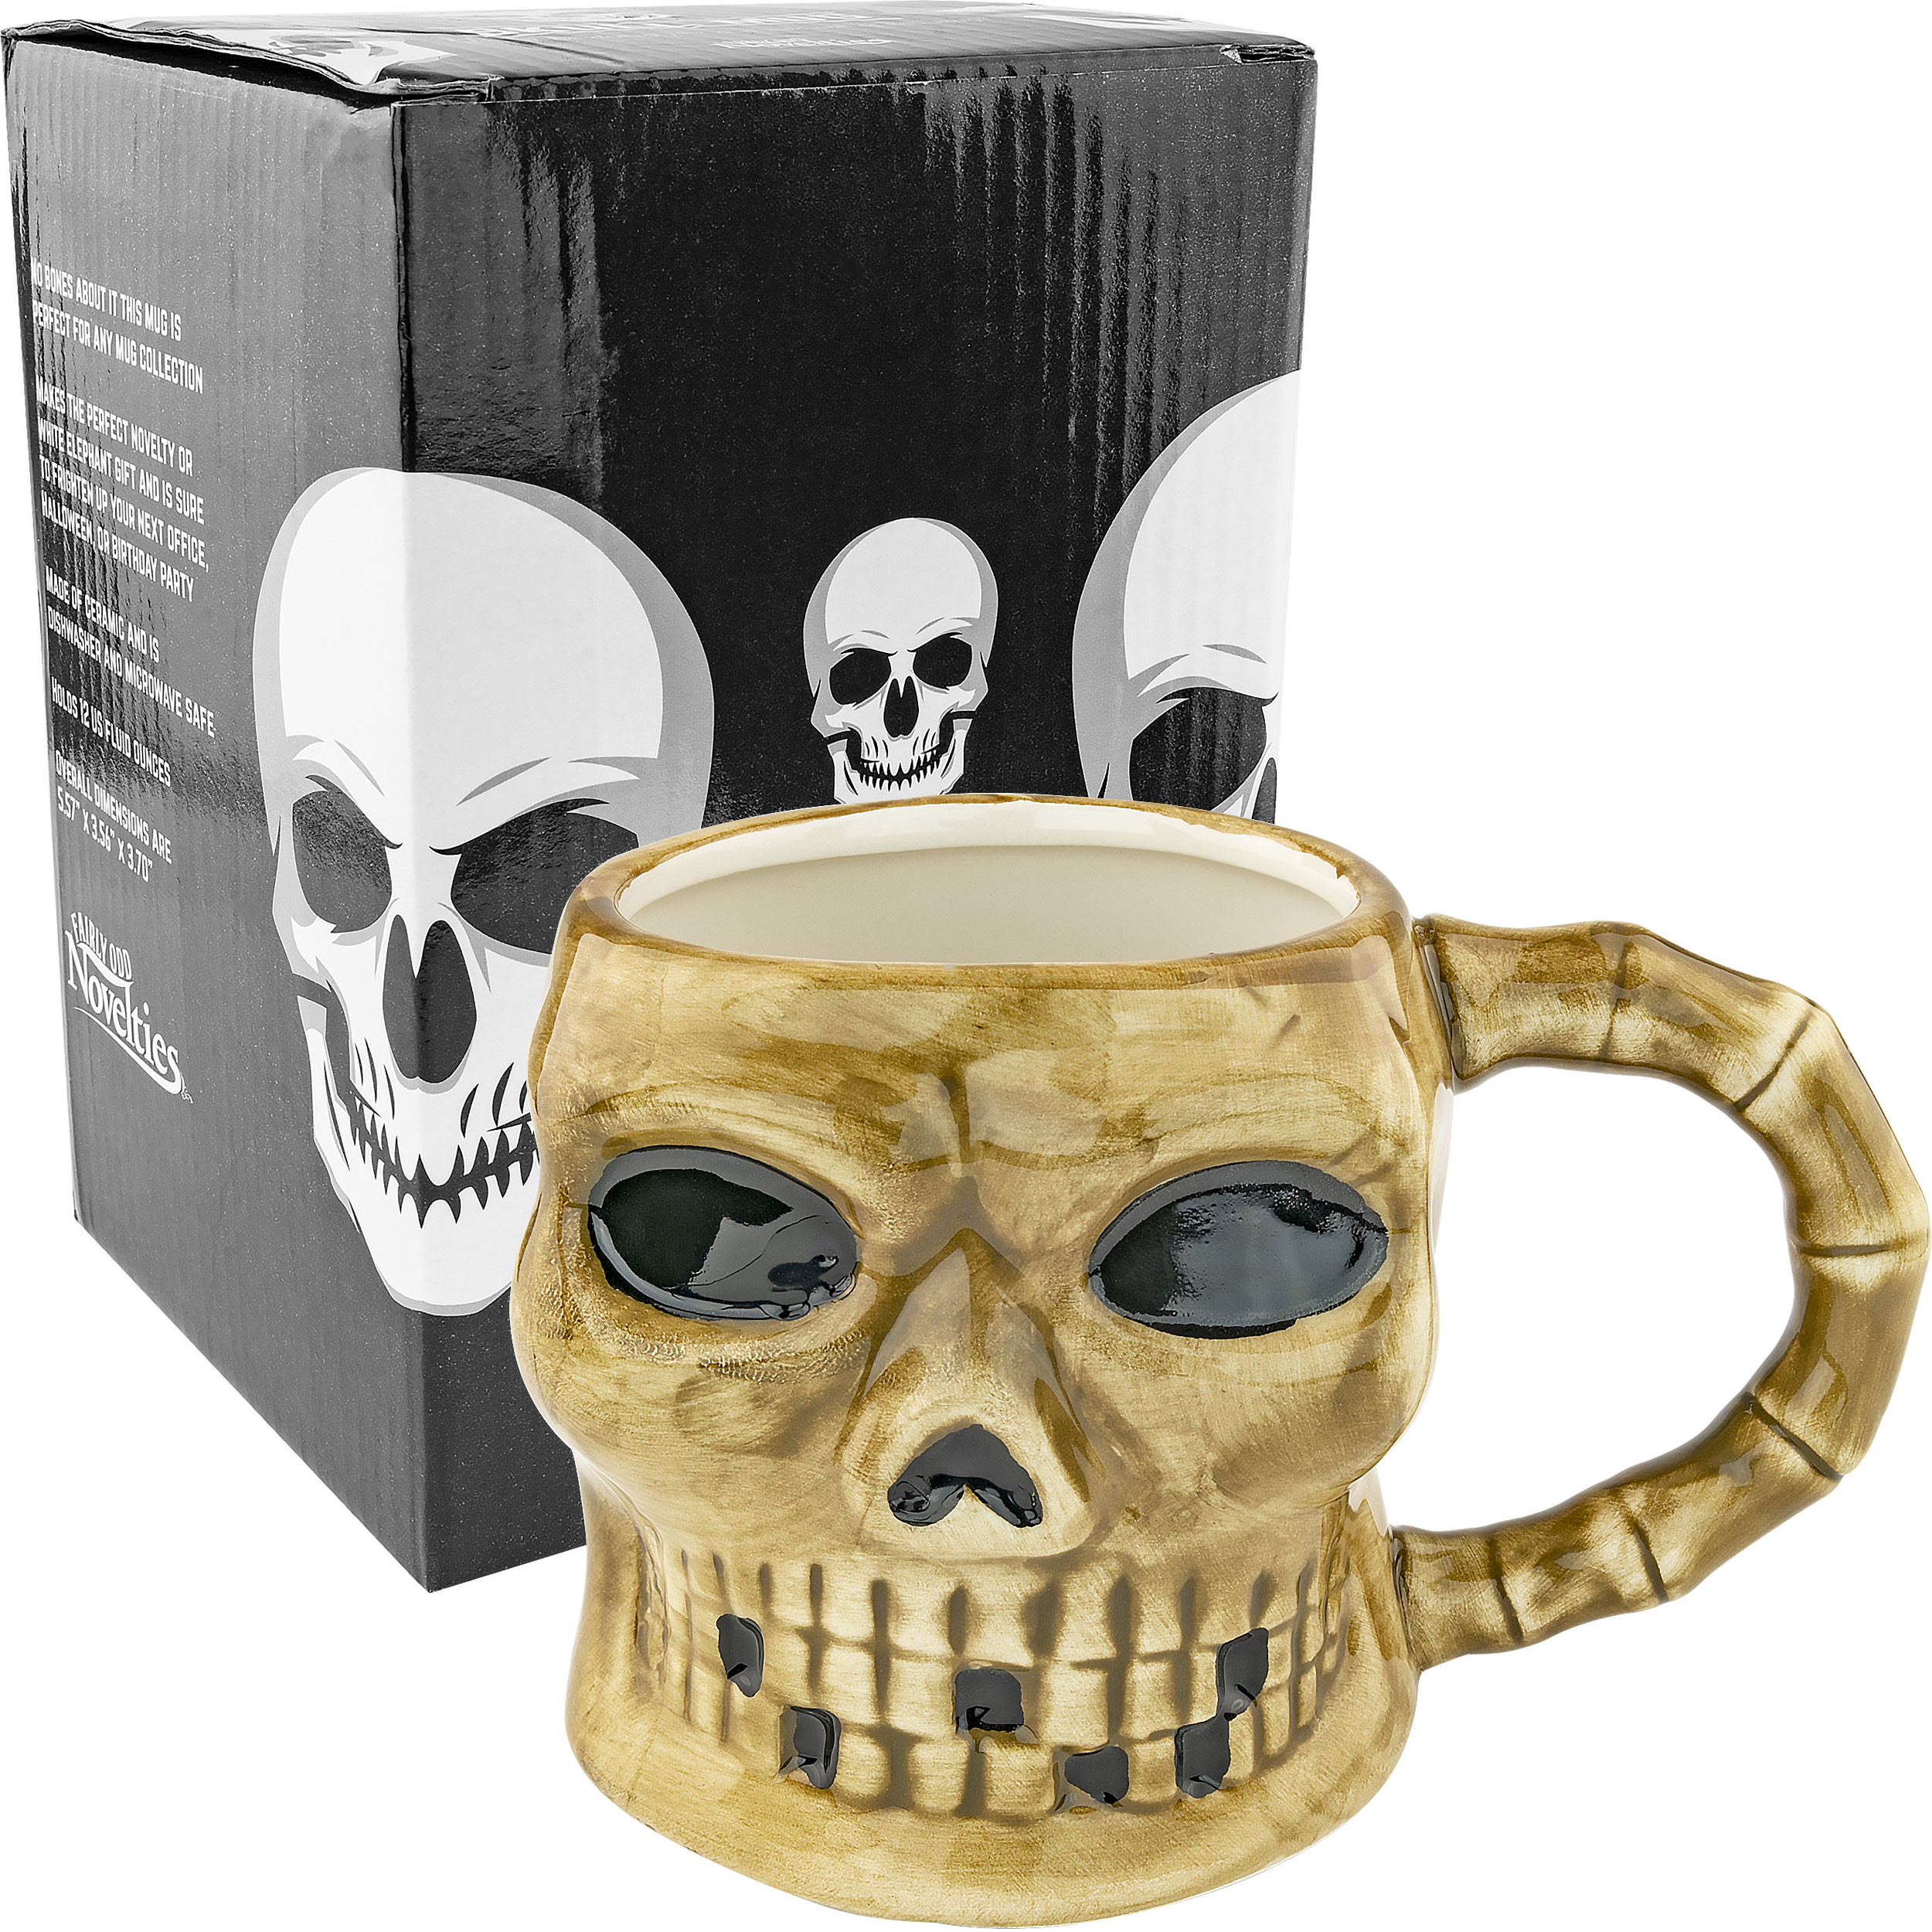 Large Skull Ceramic Coffee Mug